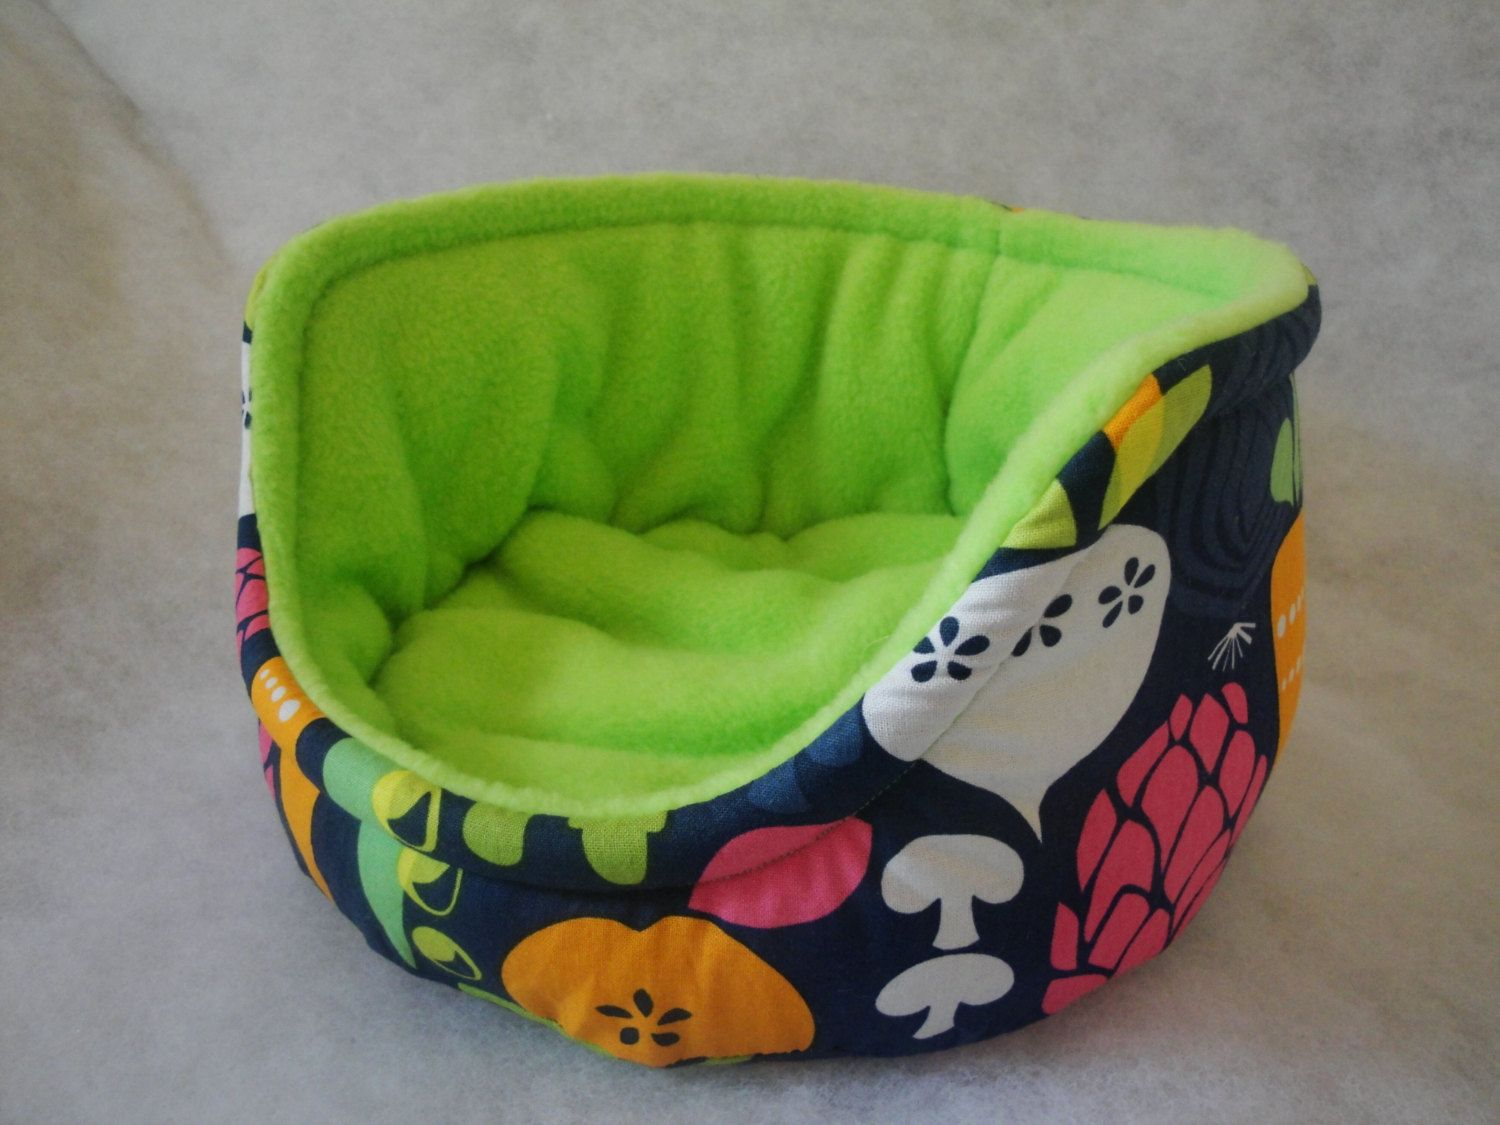 Luxury+guinea+pig+bed+in+a+veggie+design+with+by+SqueakDreams,+£12.00